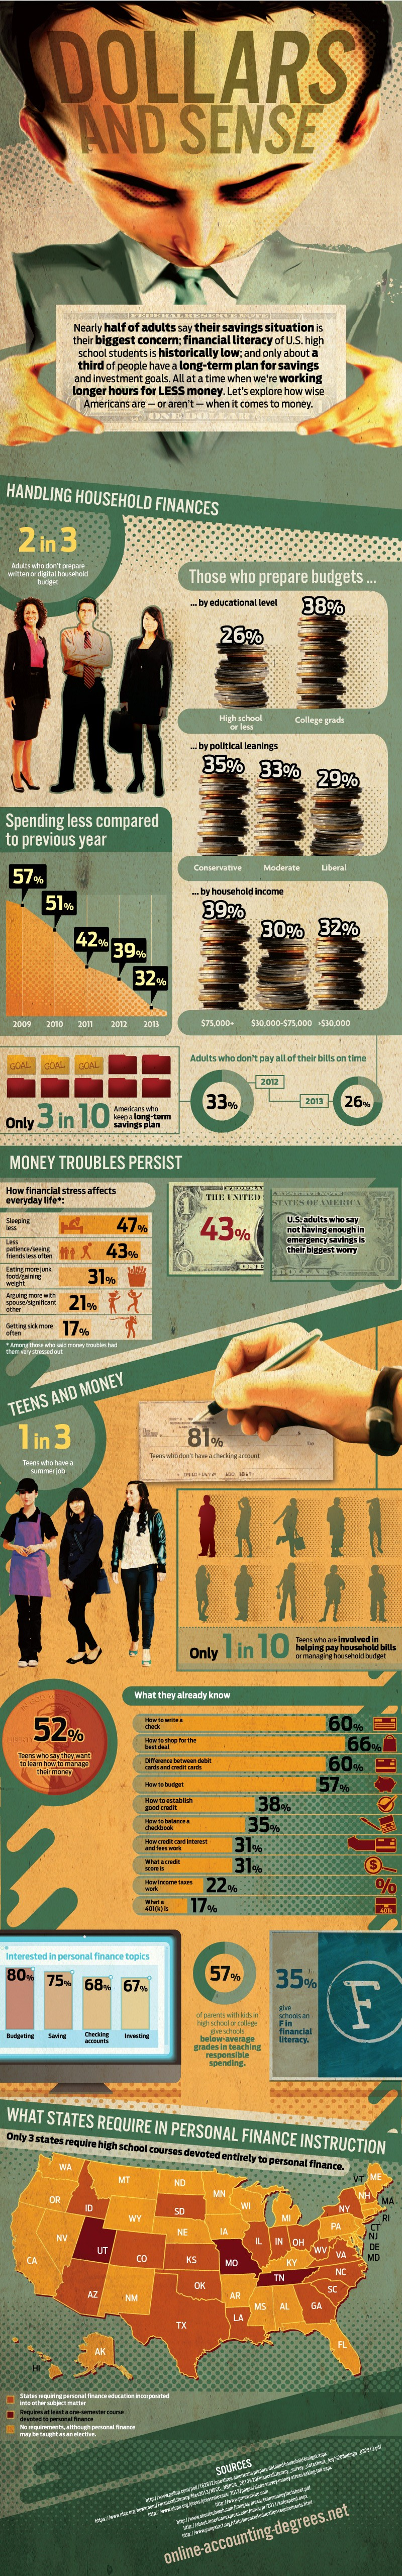 Dollars and Sense [Infographic]